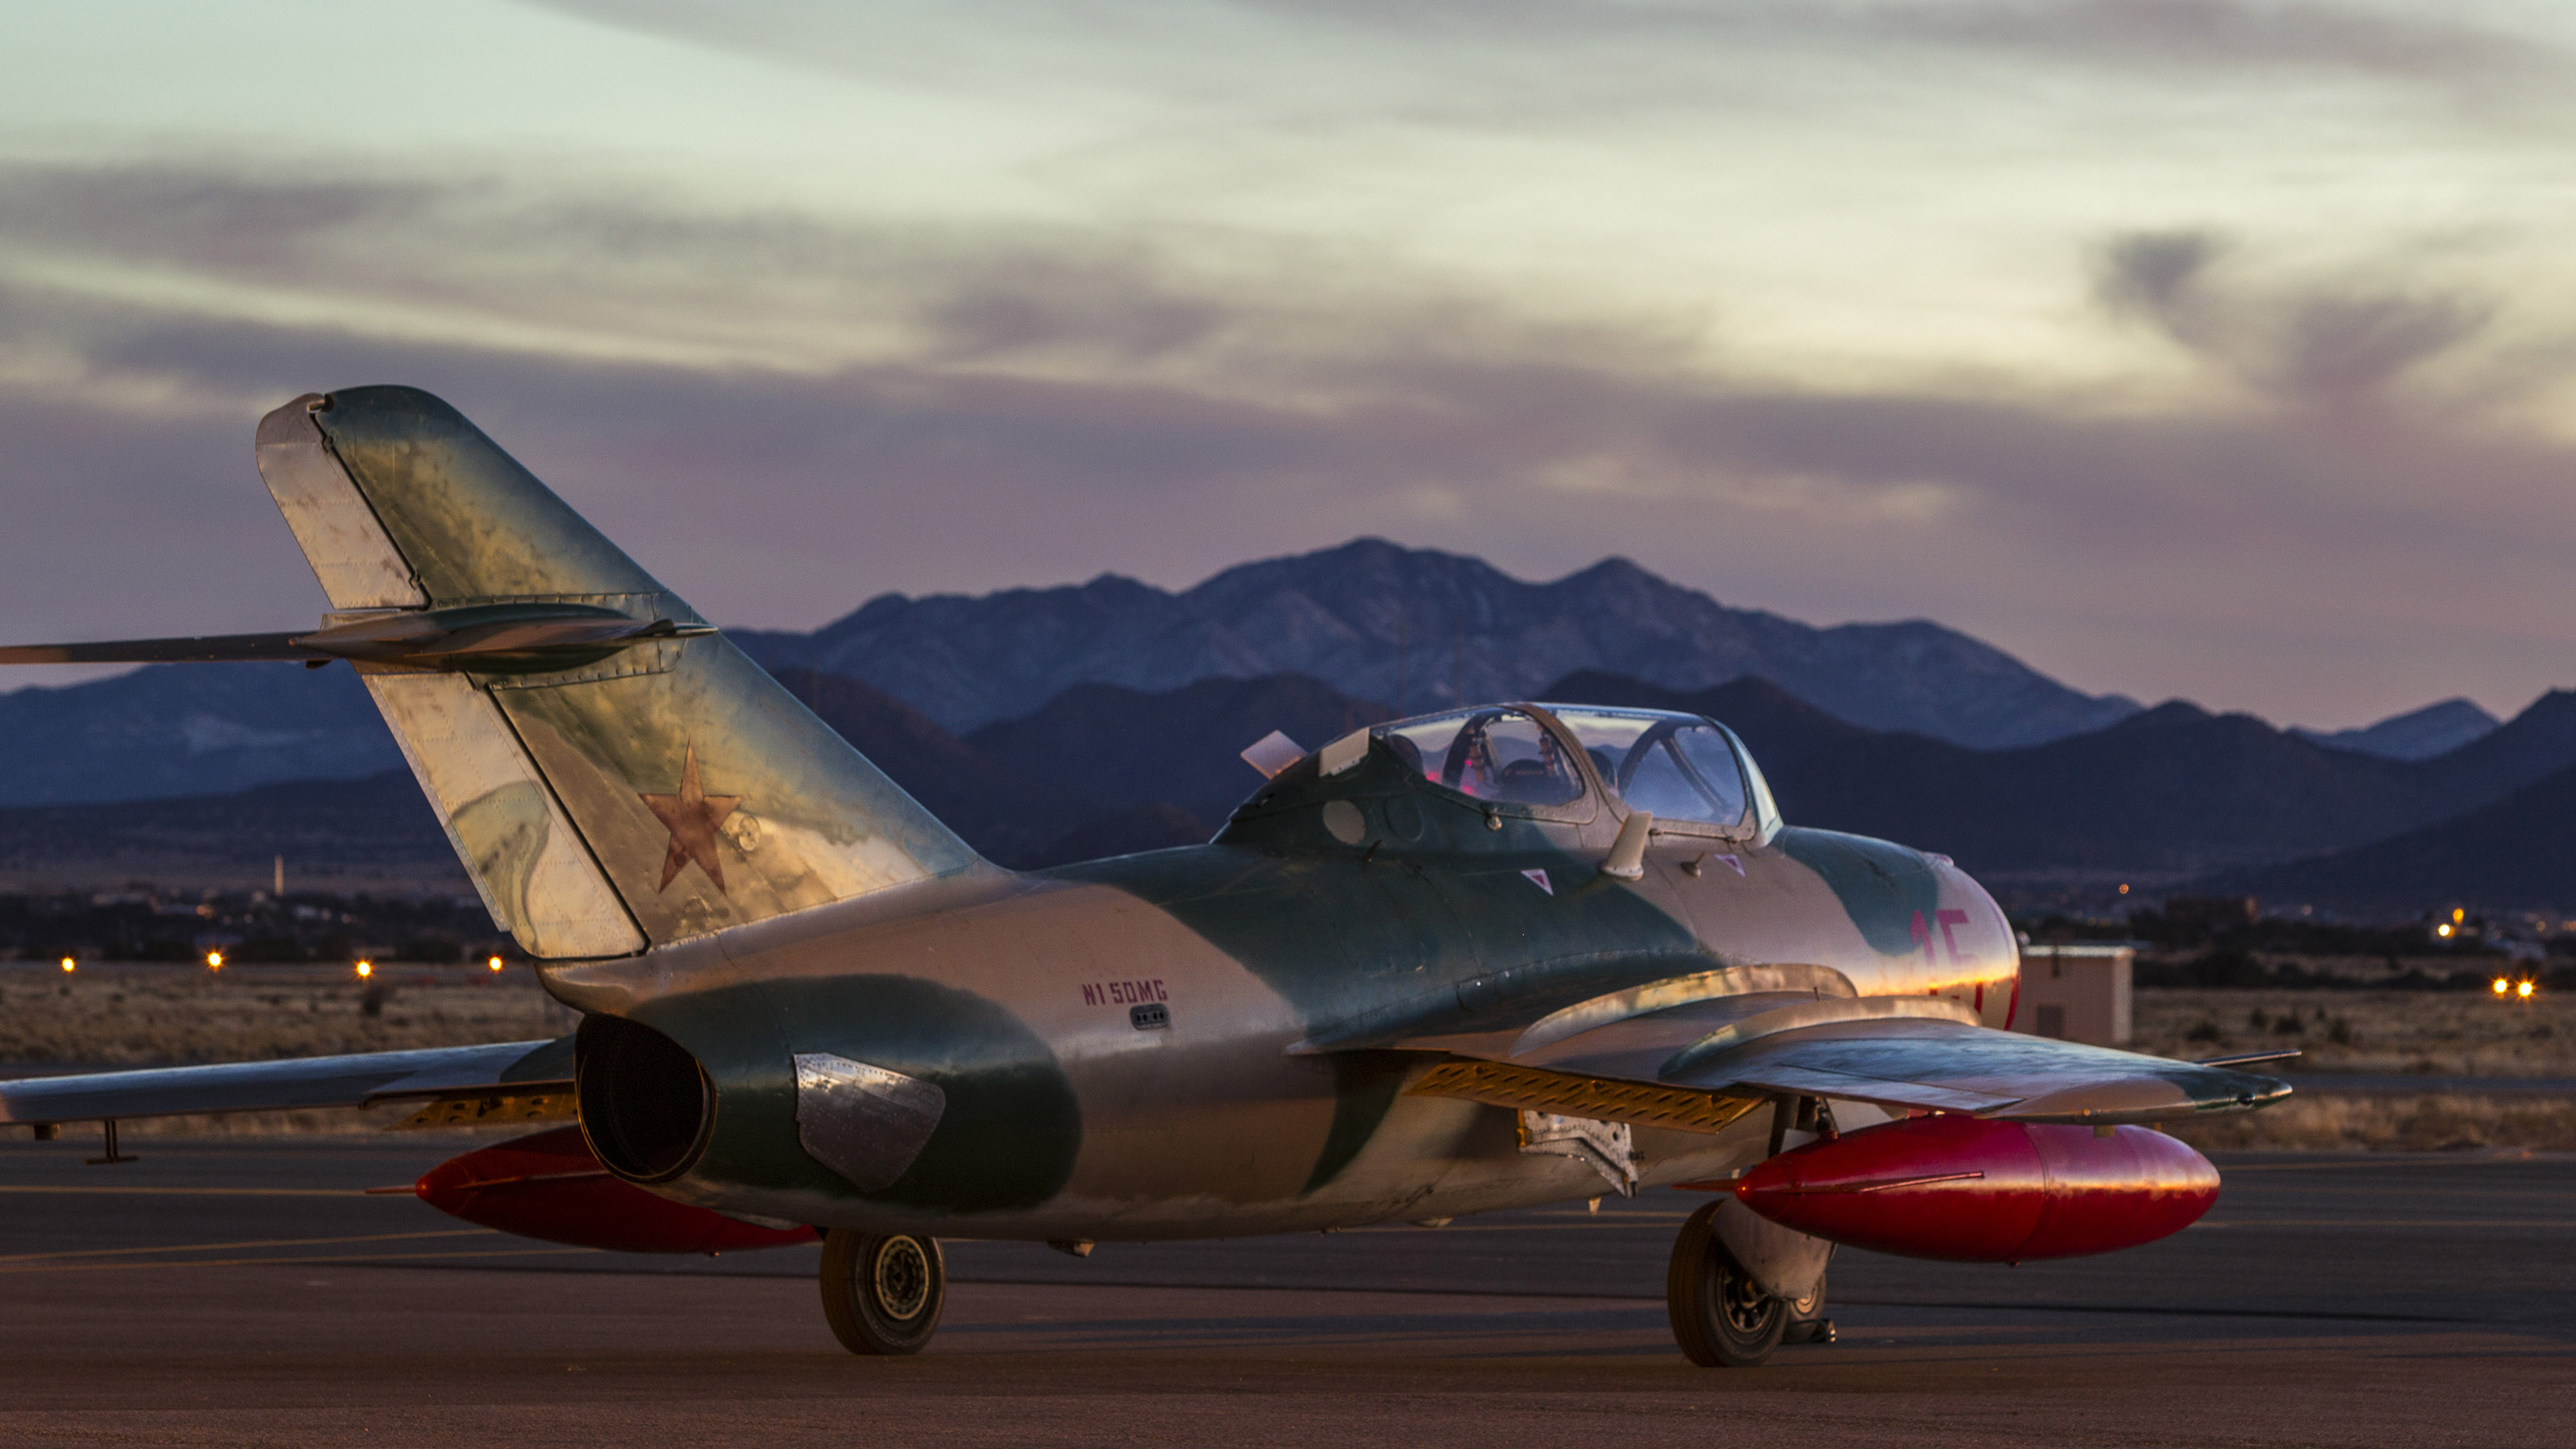 Santa Fe, New Mexico, is home of the Jet Warbird Training Center. The area offers beautiful mountain views.